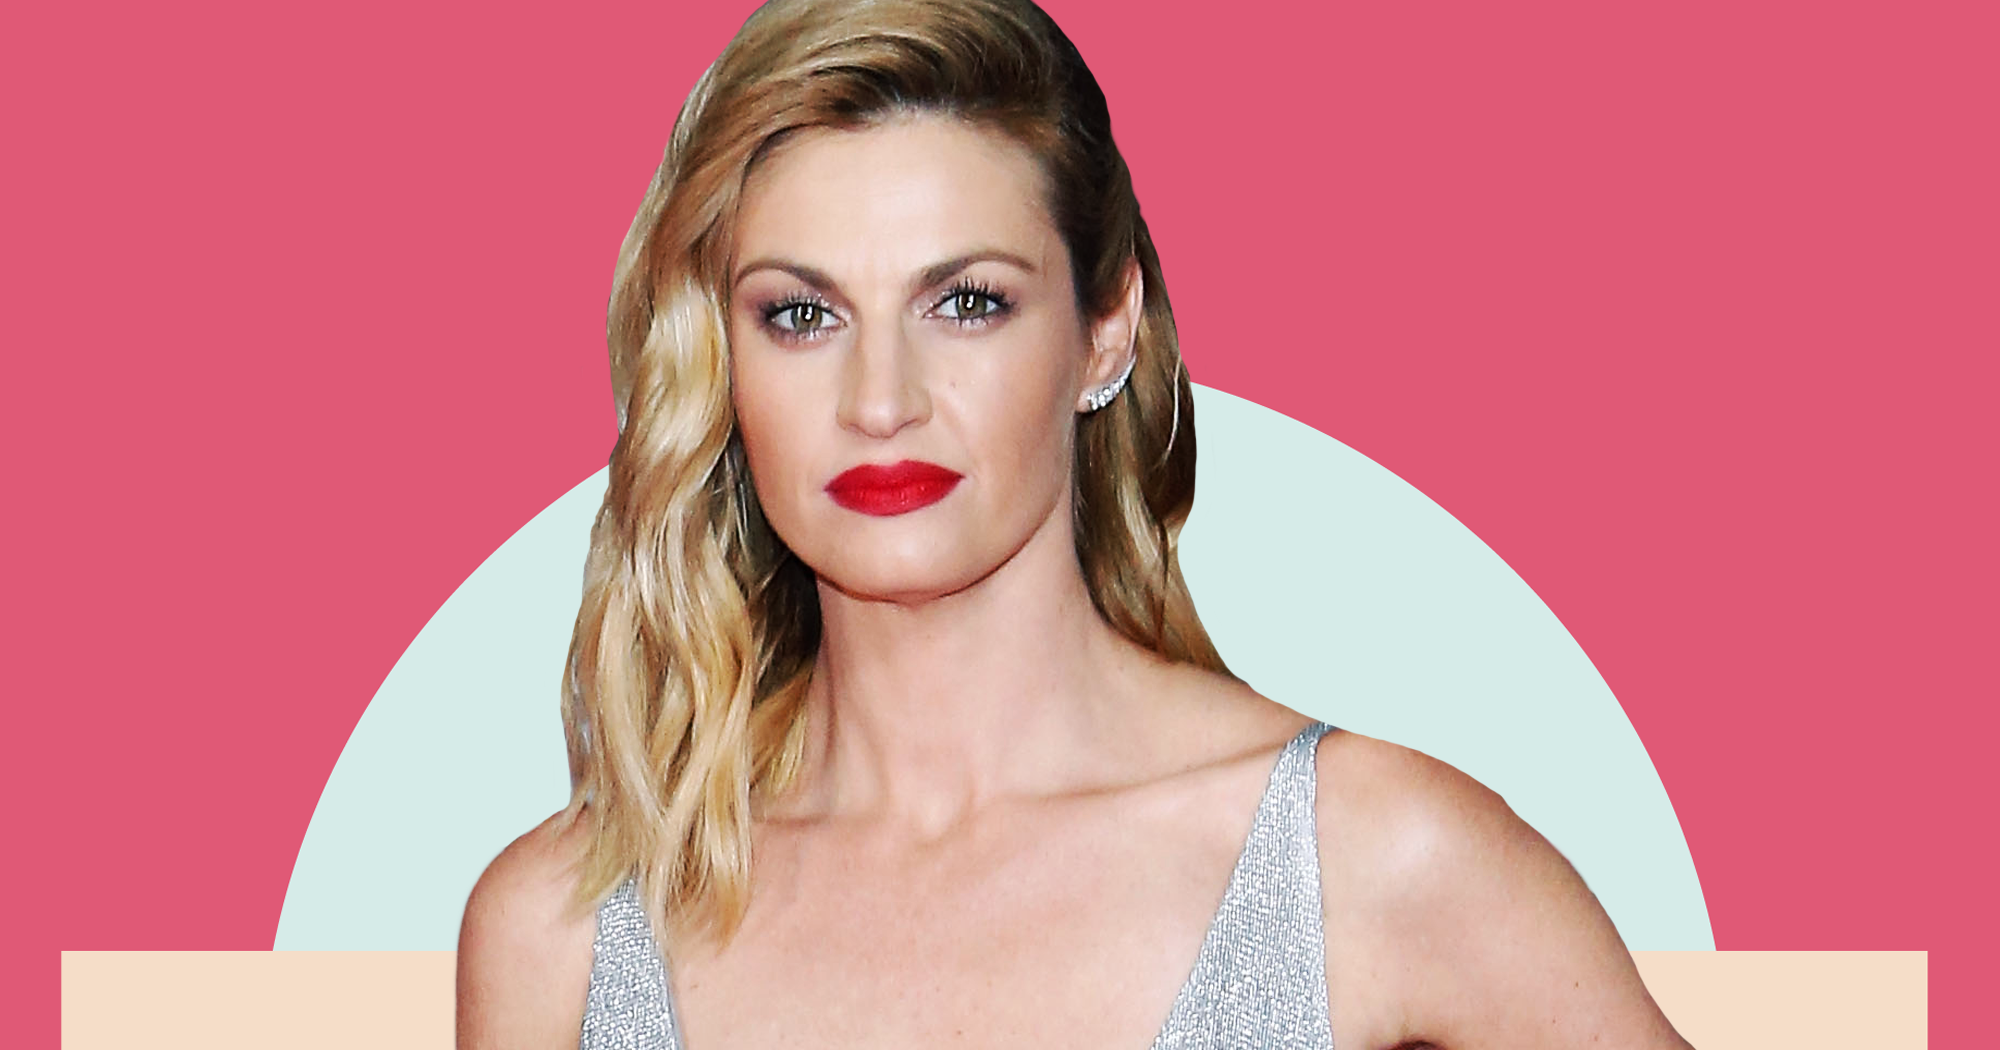 Erin Andrews Reveals She Has Cervical Cancer - The